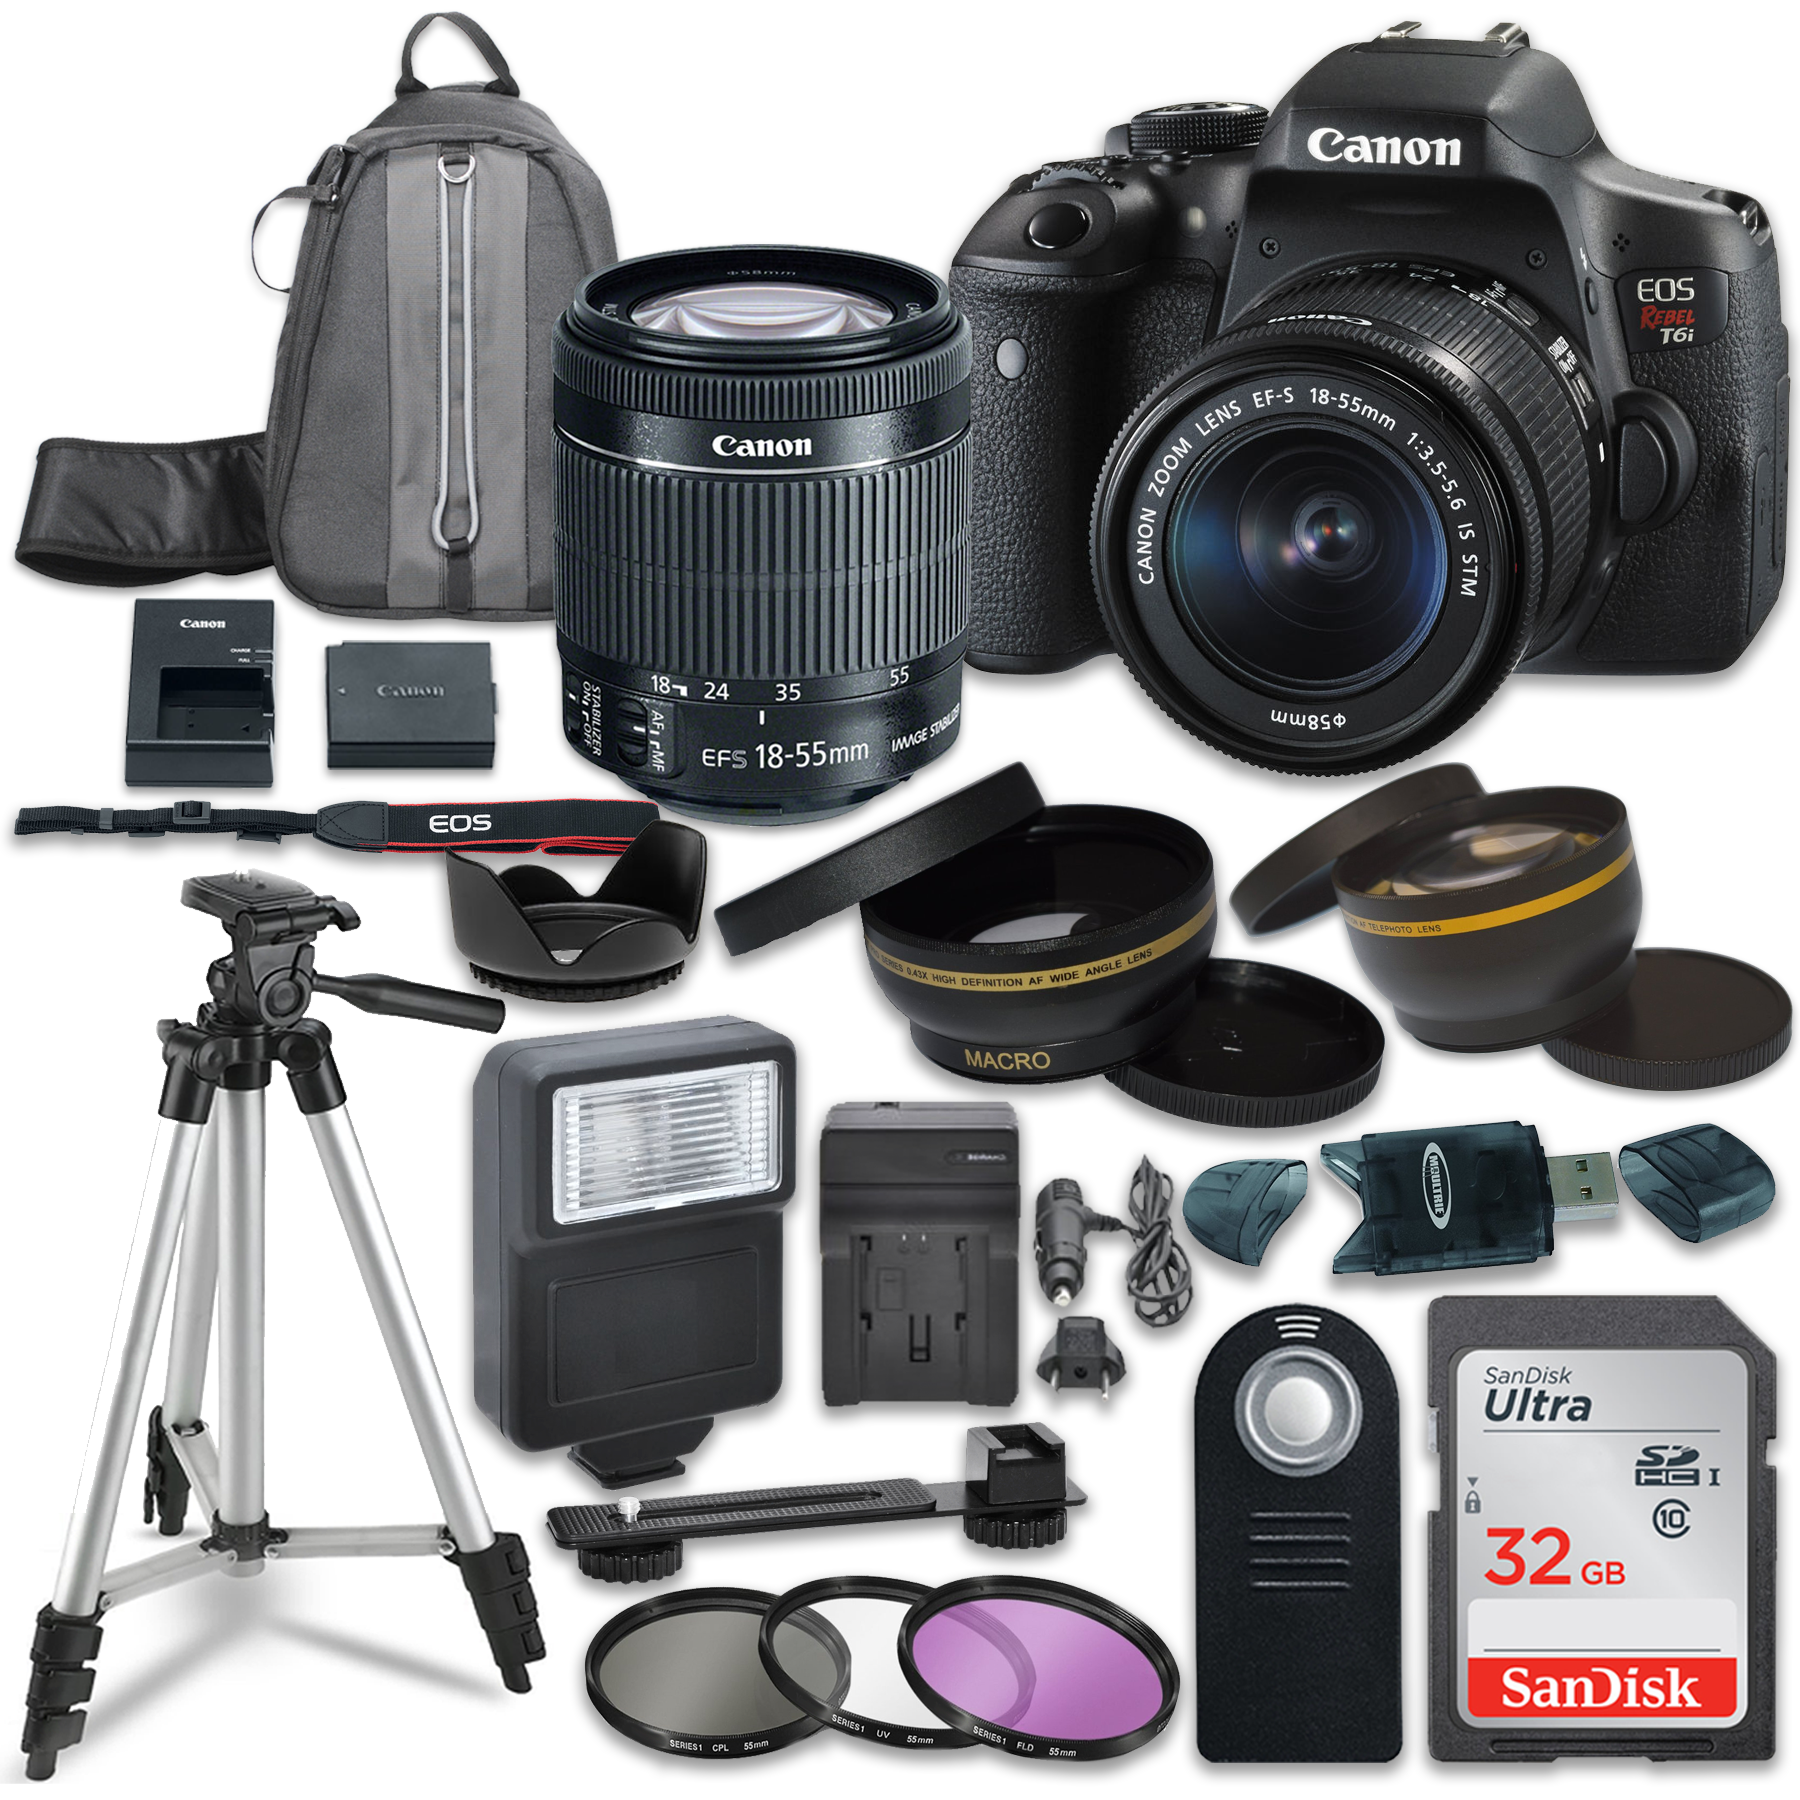 Canon EOS Rebel T6i Digital SLR Camera with Canon EF-S 18-55mm IS STM Lens + Sandisk 32GB SDHC Memory Cards + Accessory Bundle